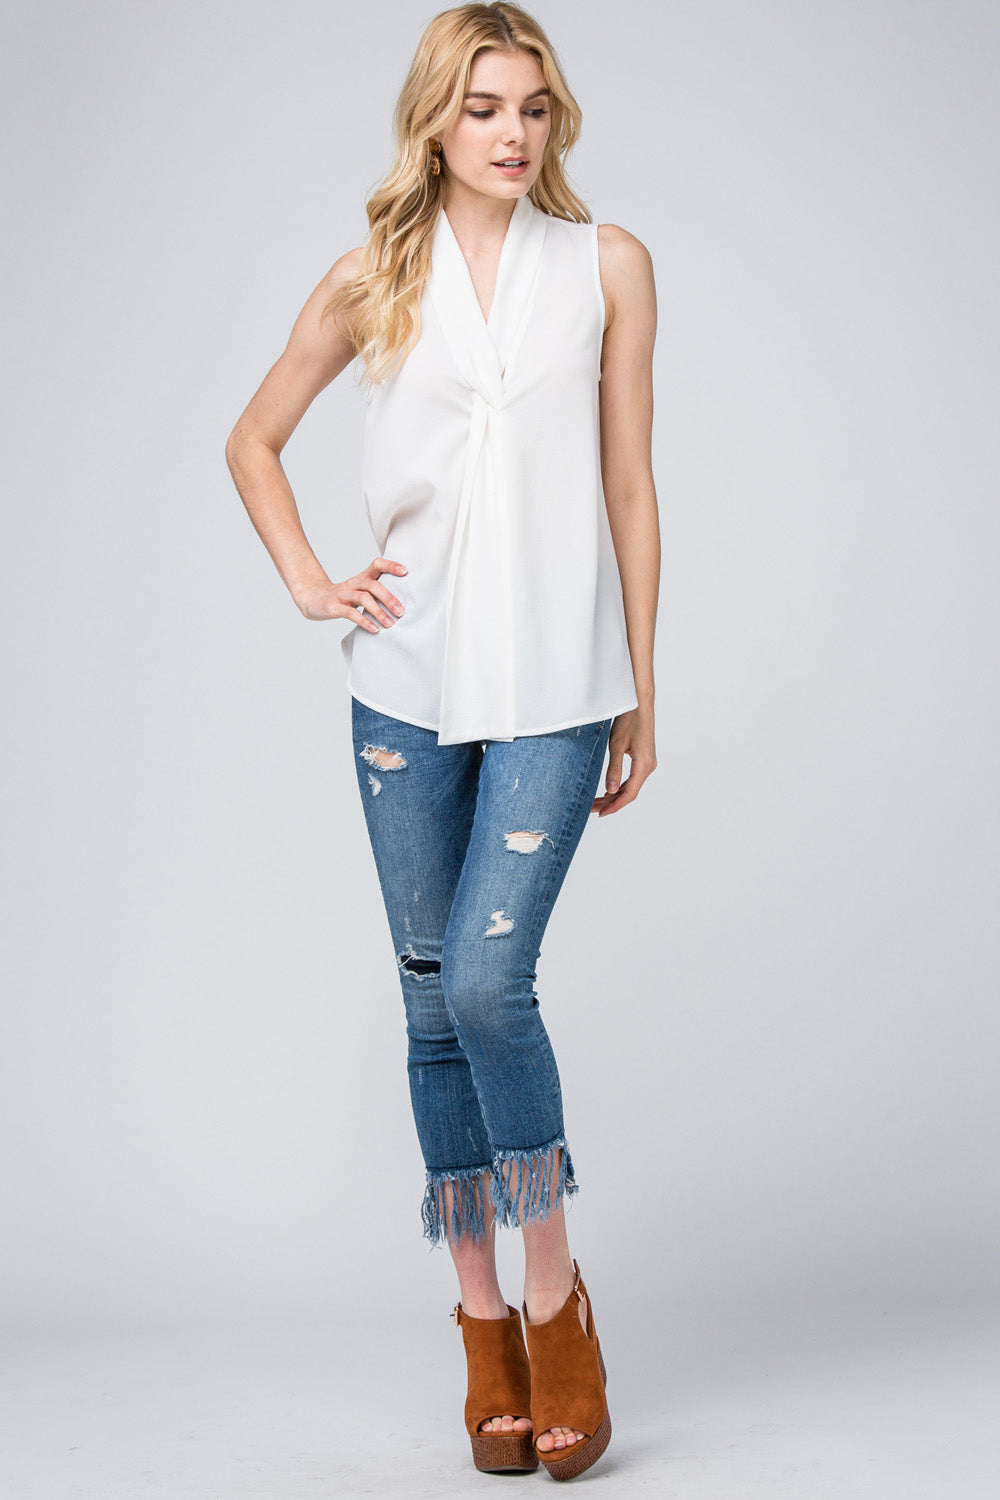 Melissa All Day Long White Top